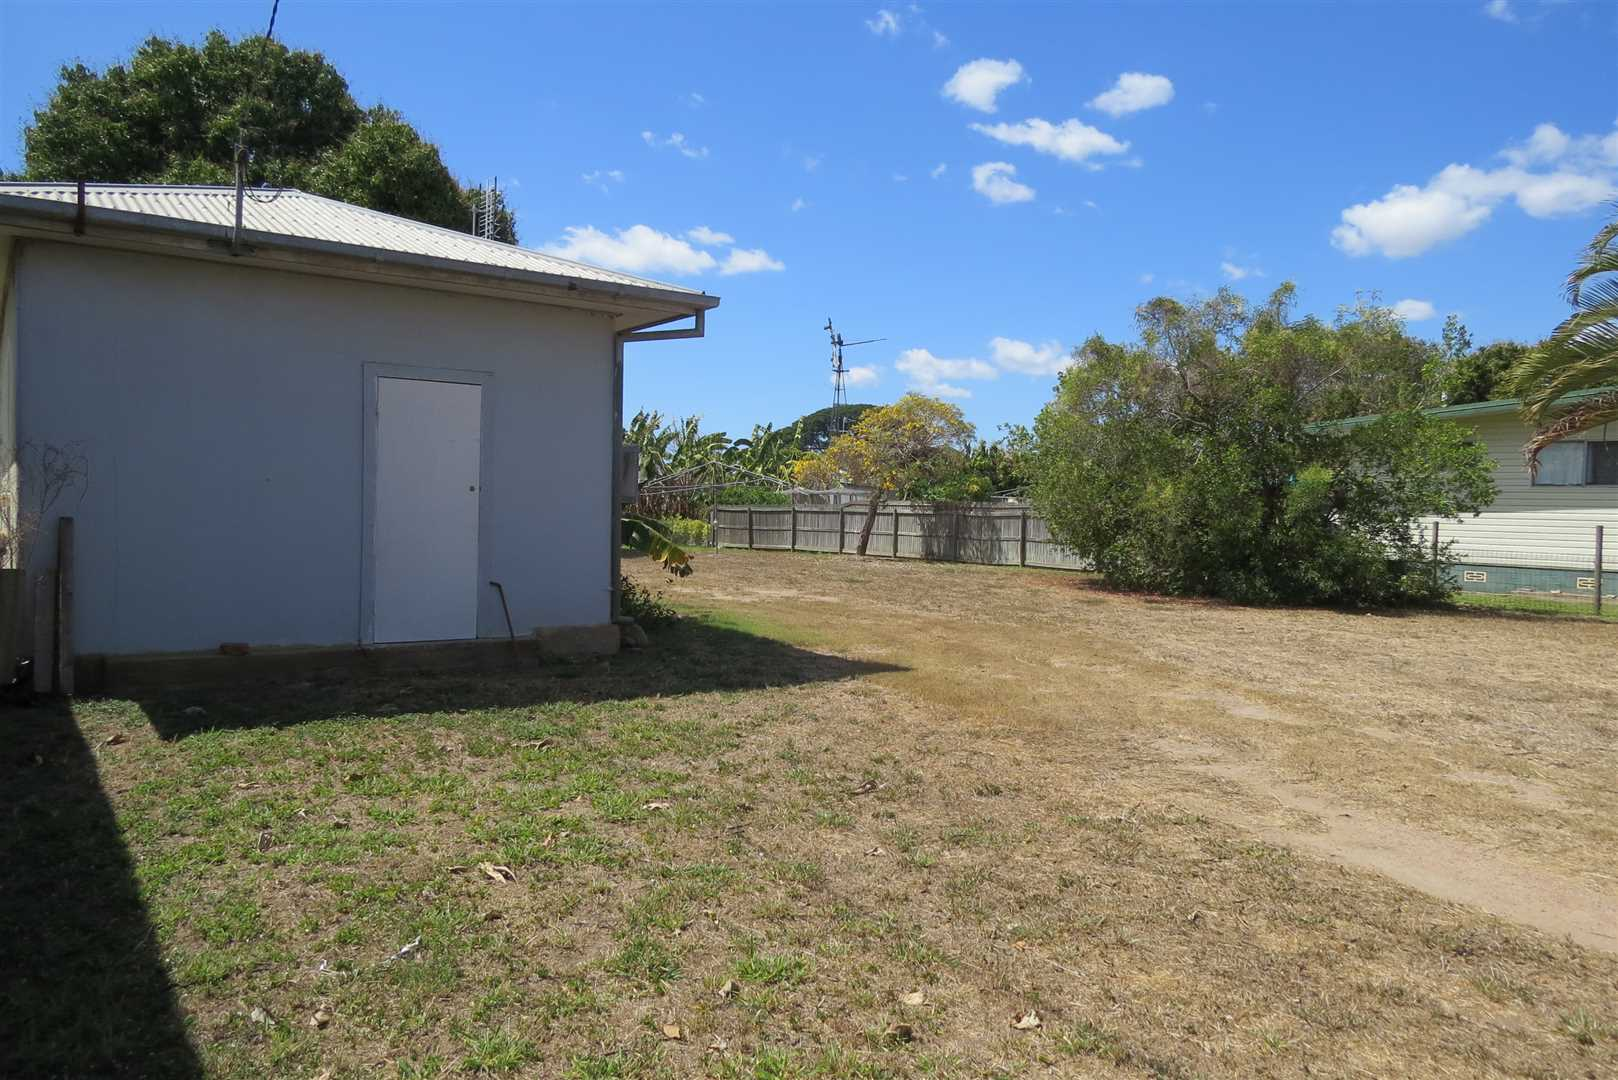 Budget 1 Bedroom Home Hill Property - Rent Reduced!